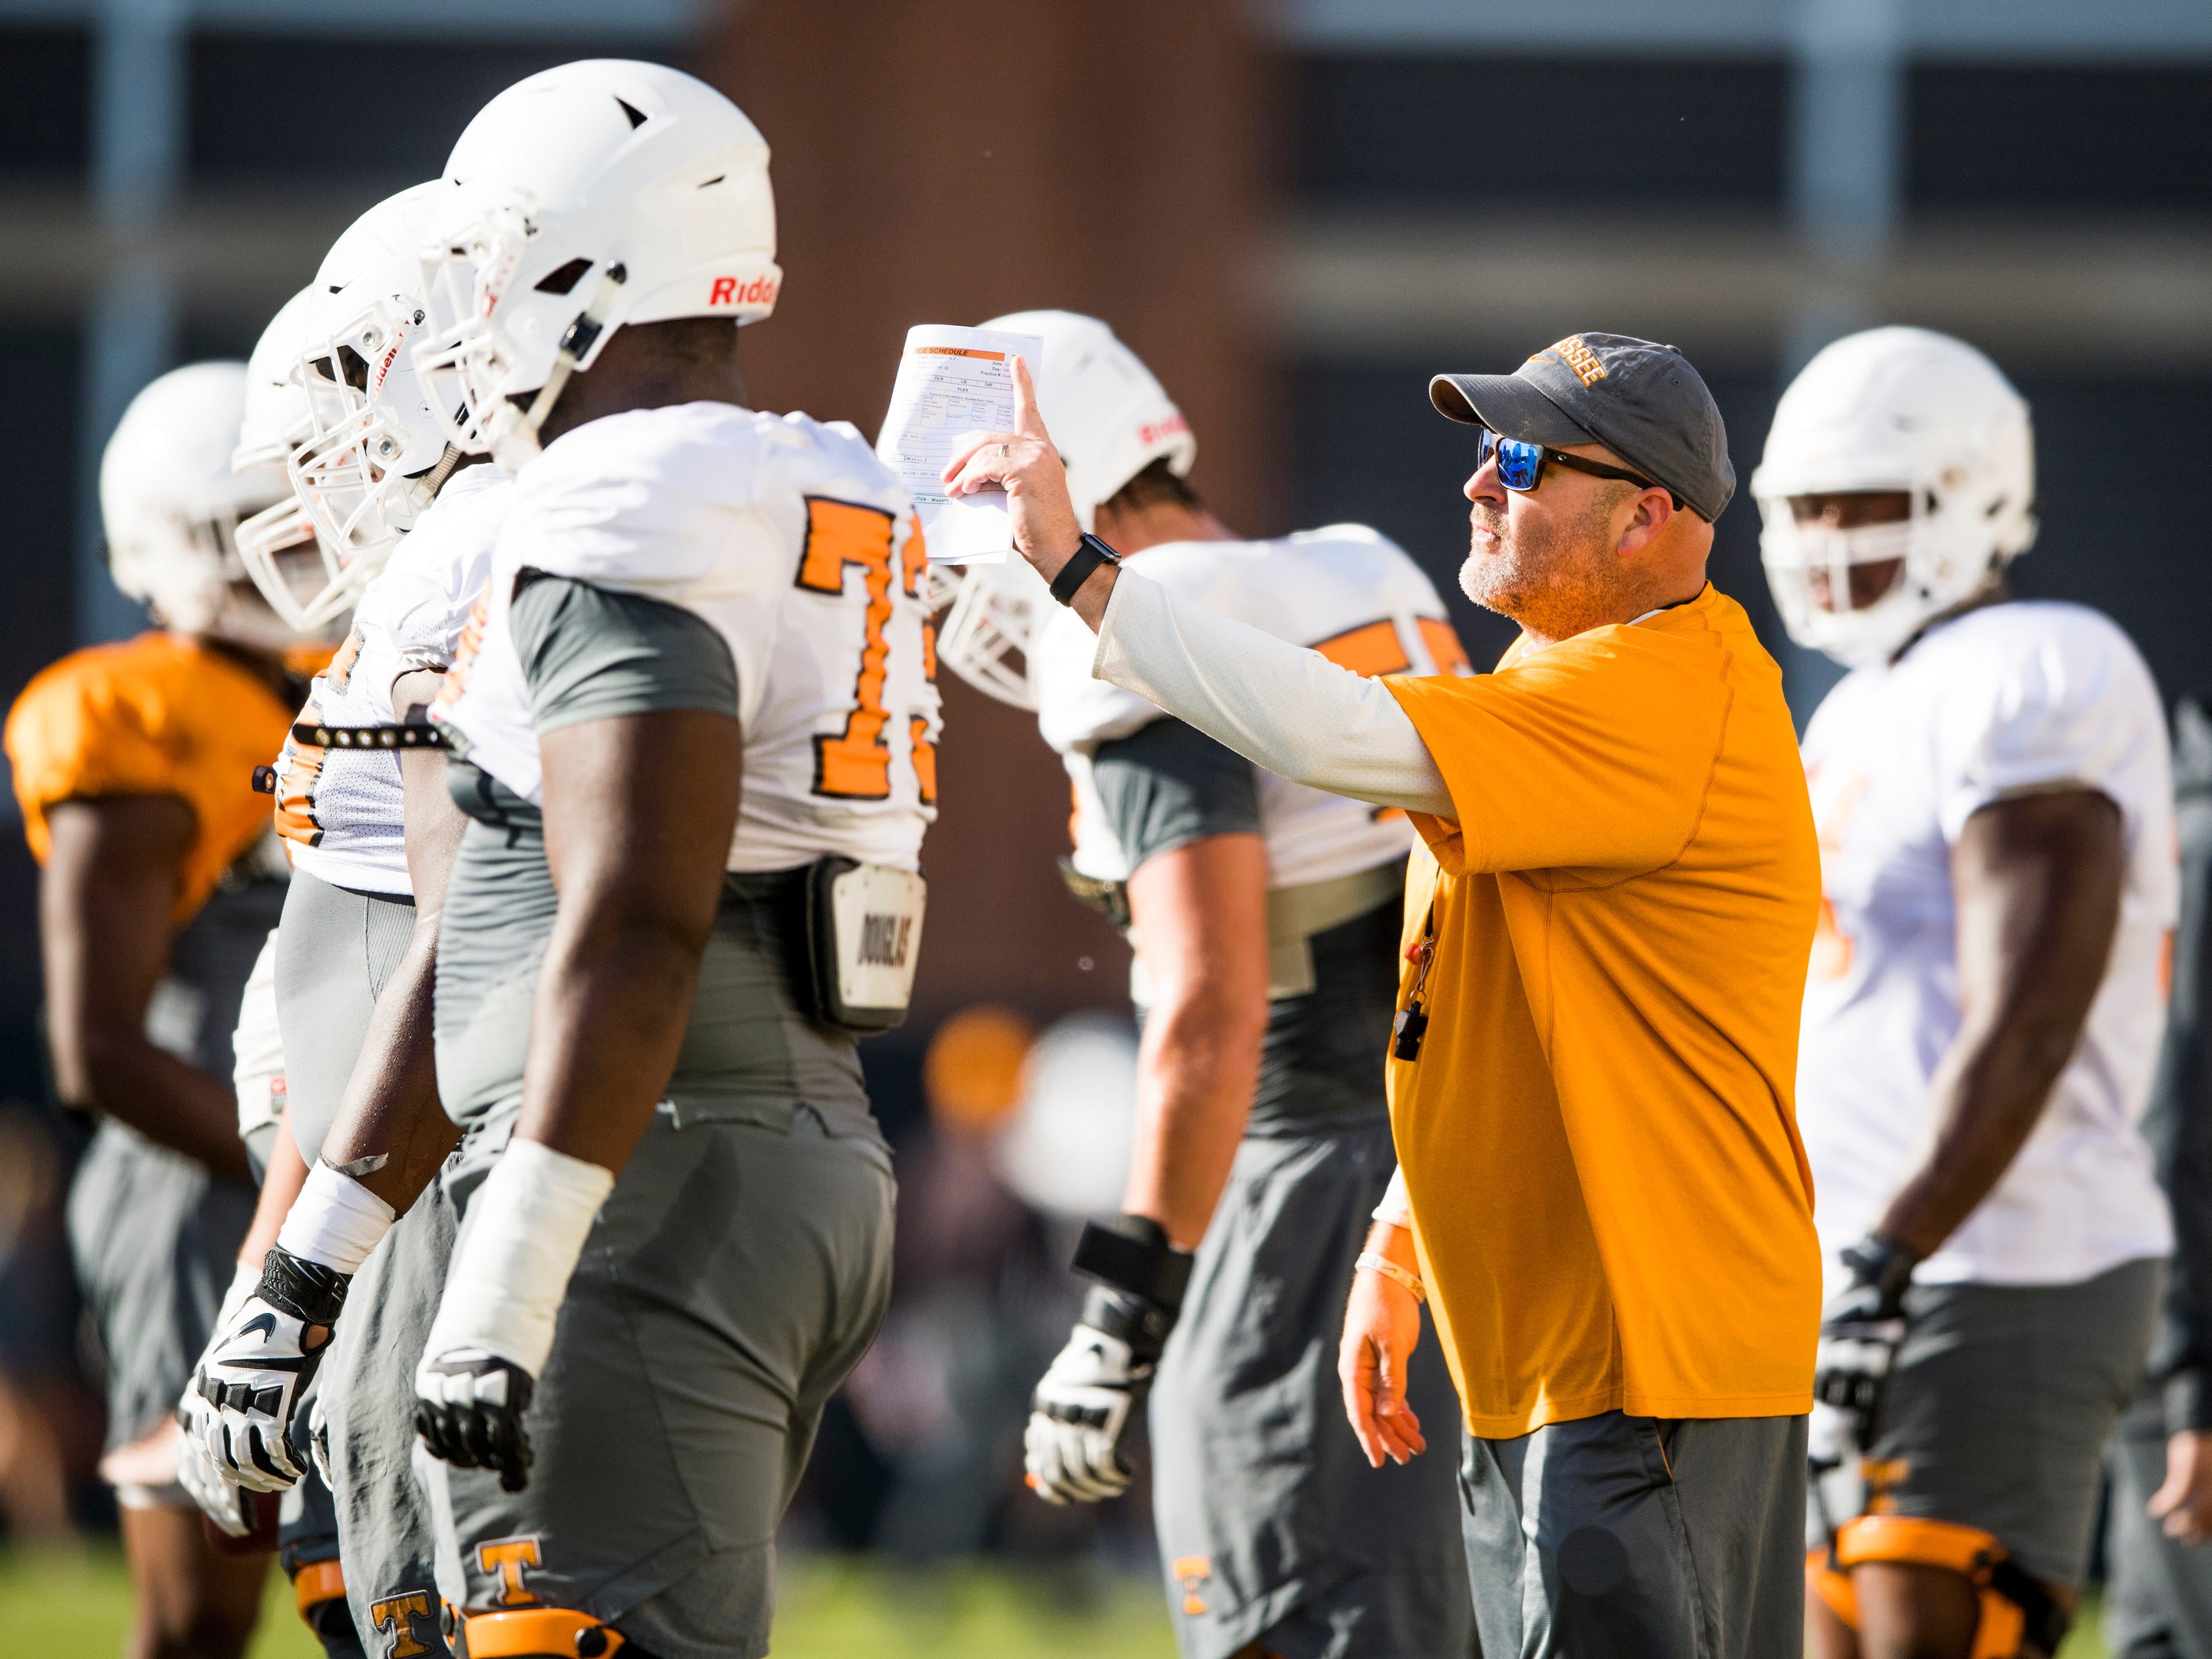 Tennessee offensive line coach Will Friend during Tennessee's afternoon football practice on campus on Wednesday, October 24, 2018.